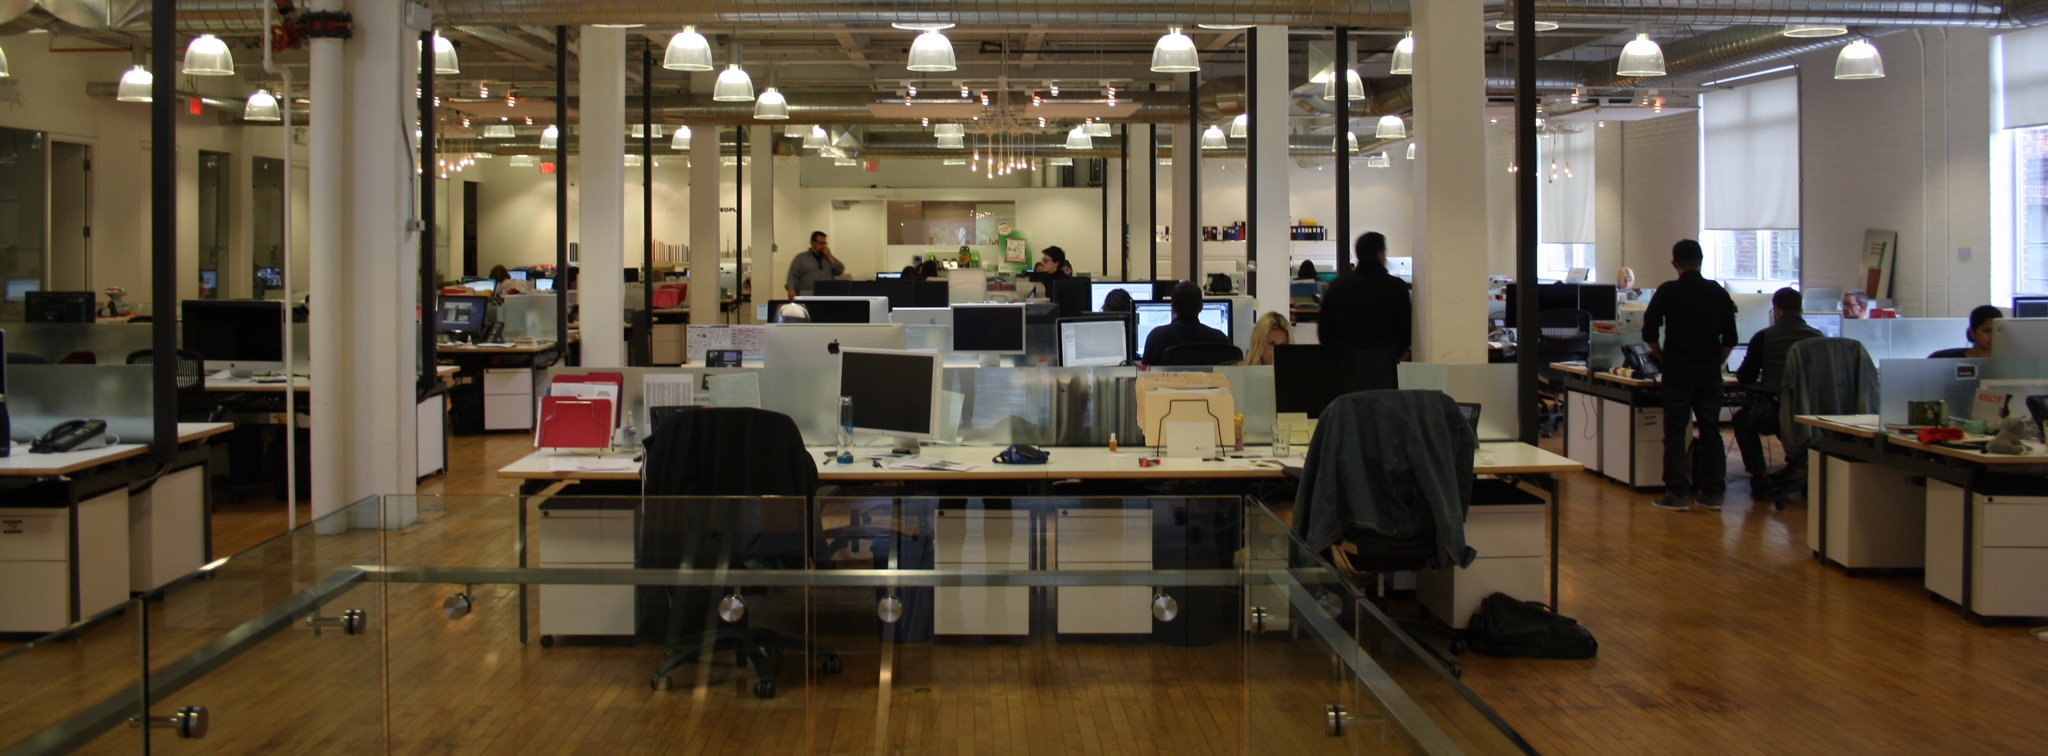 FCB Toronto Advertising Agency's Open Space Office